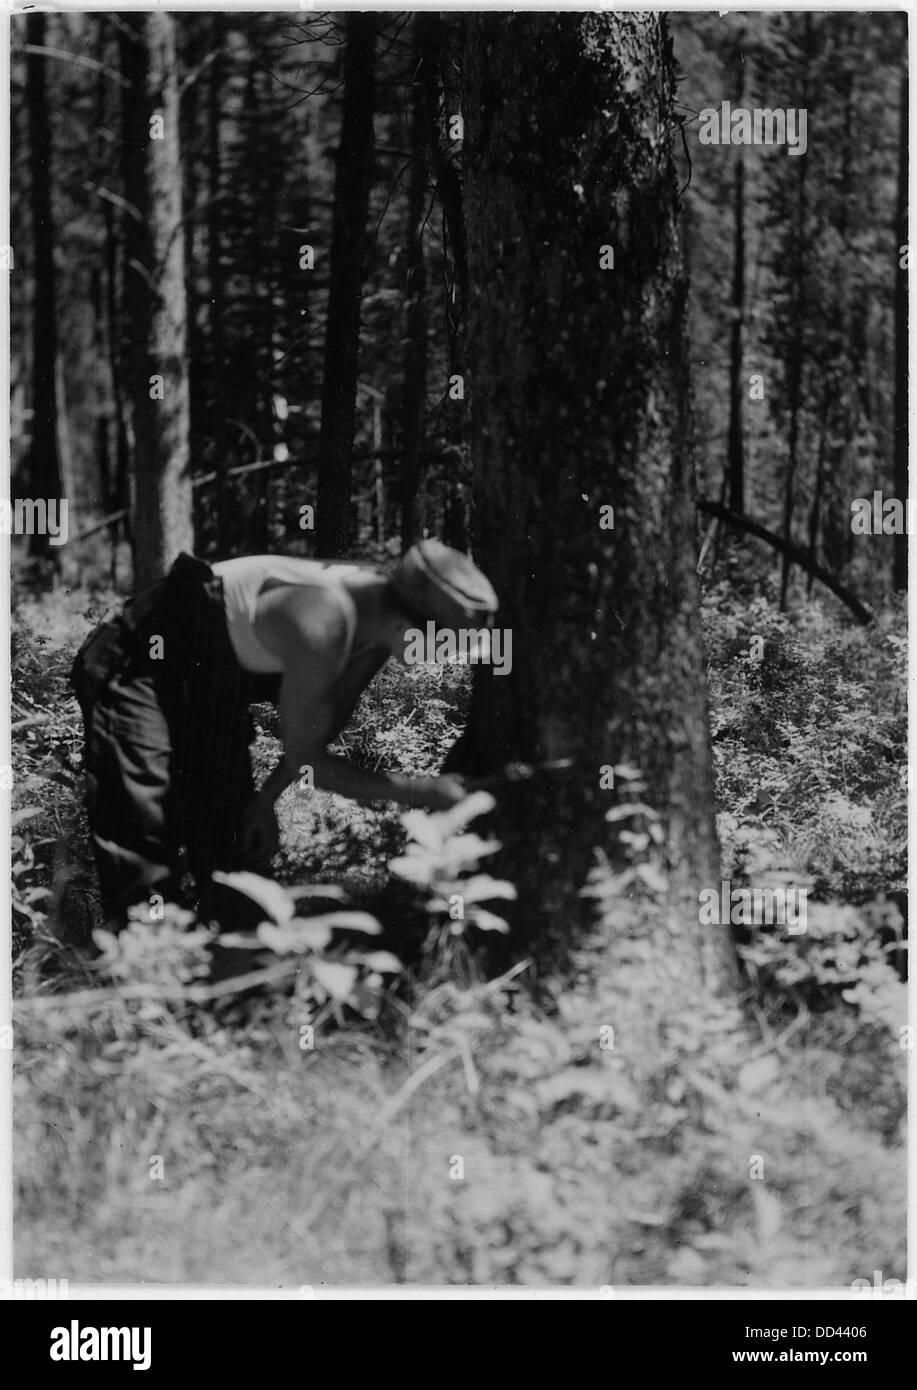 The man examining the tree is verifying indications of bark bettle attack - - 286074 - Stock Image